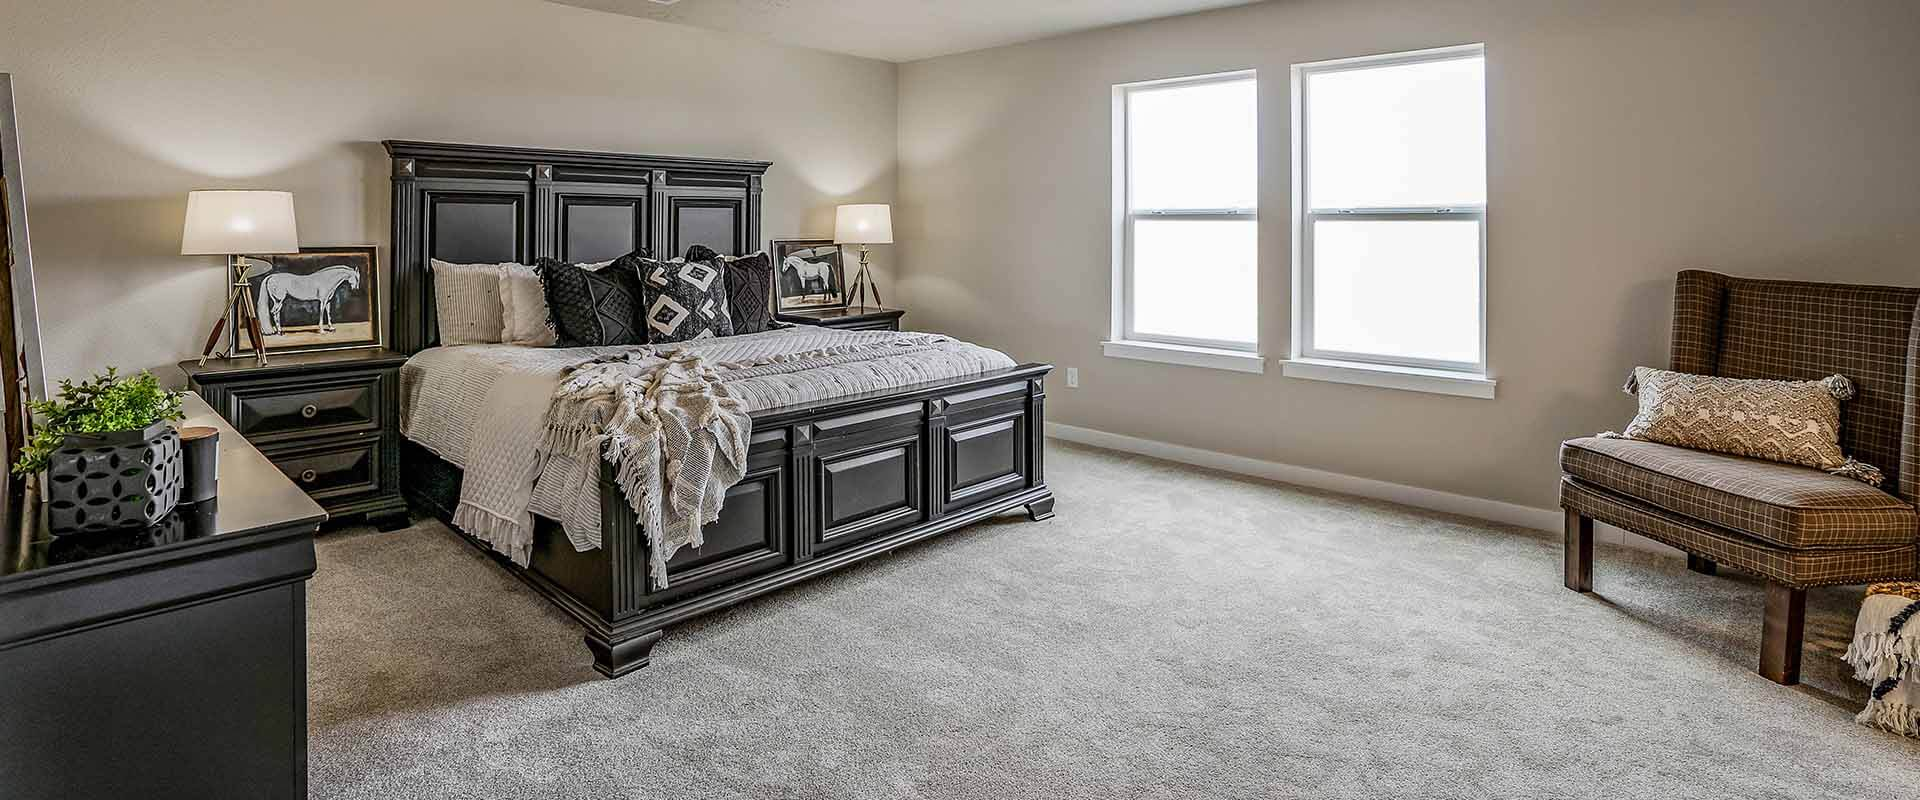 Yosemite_Hubble_Homes_New_Homes_Boise_0001_Charter Pointe Yosemite Model 7543 Foremast-38 Master1.jpg